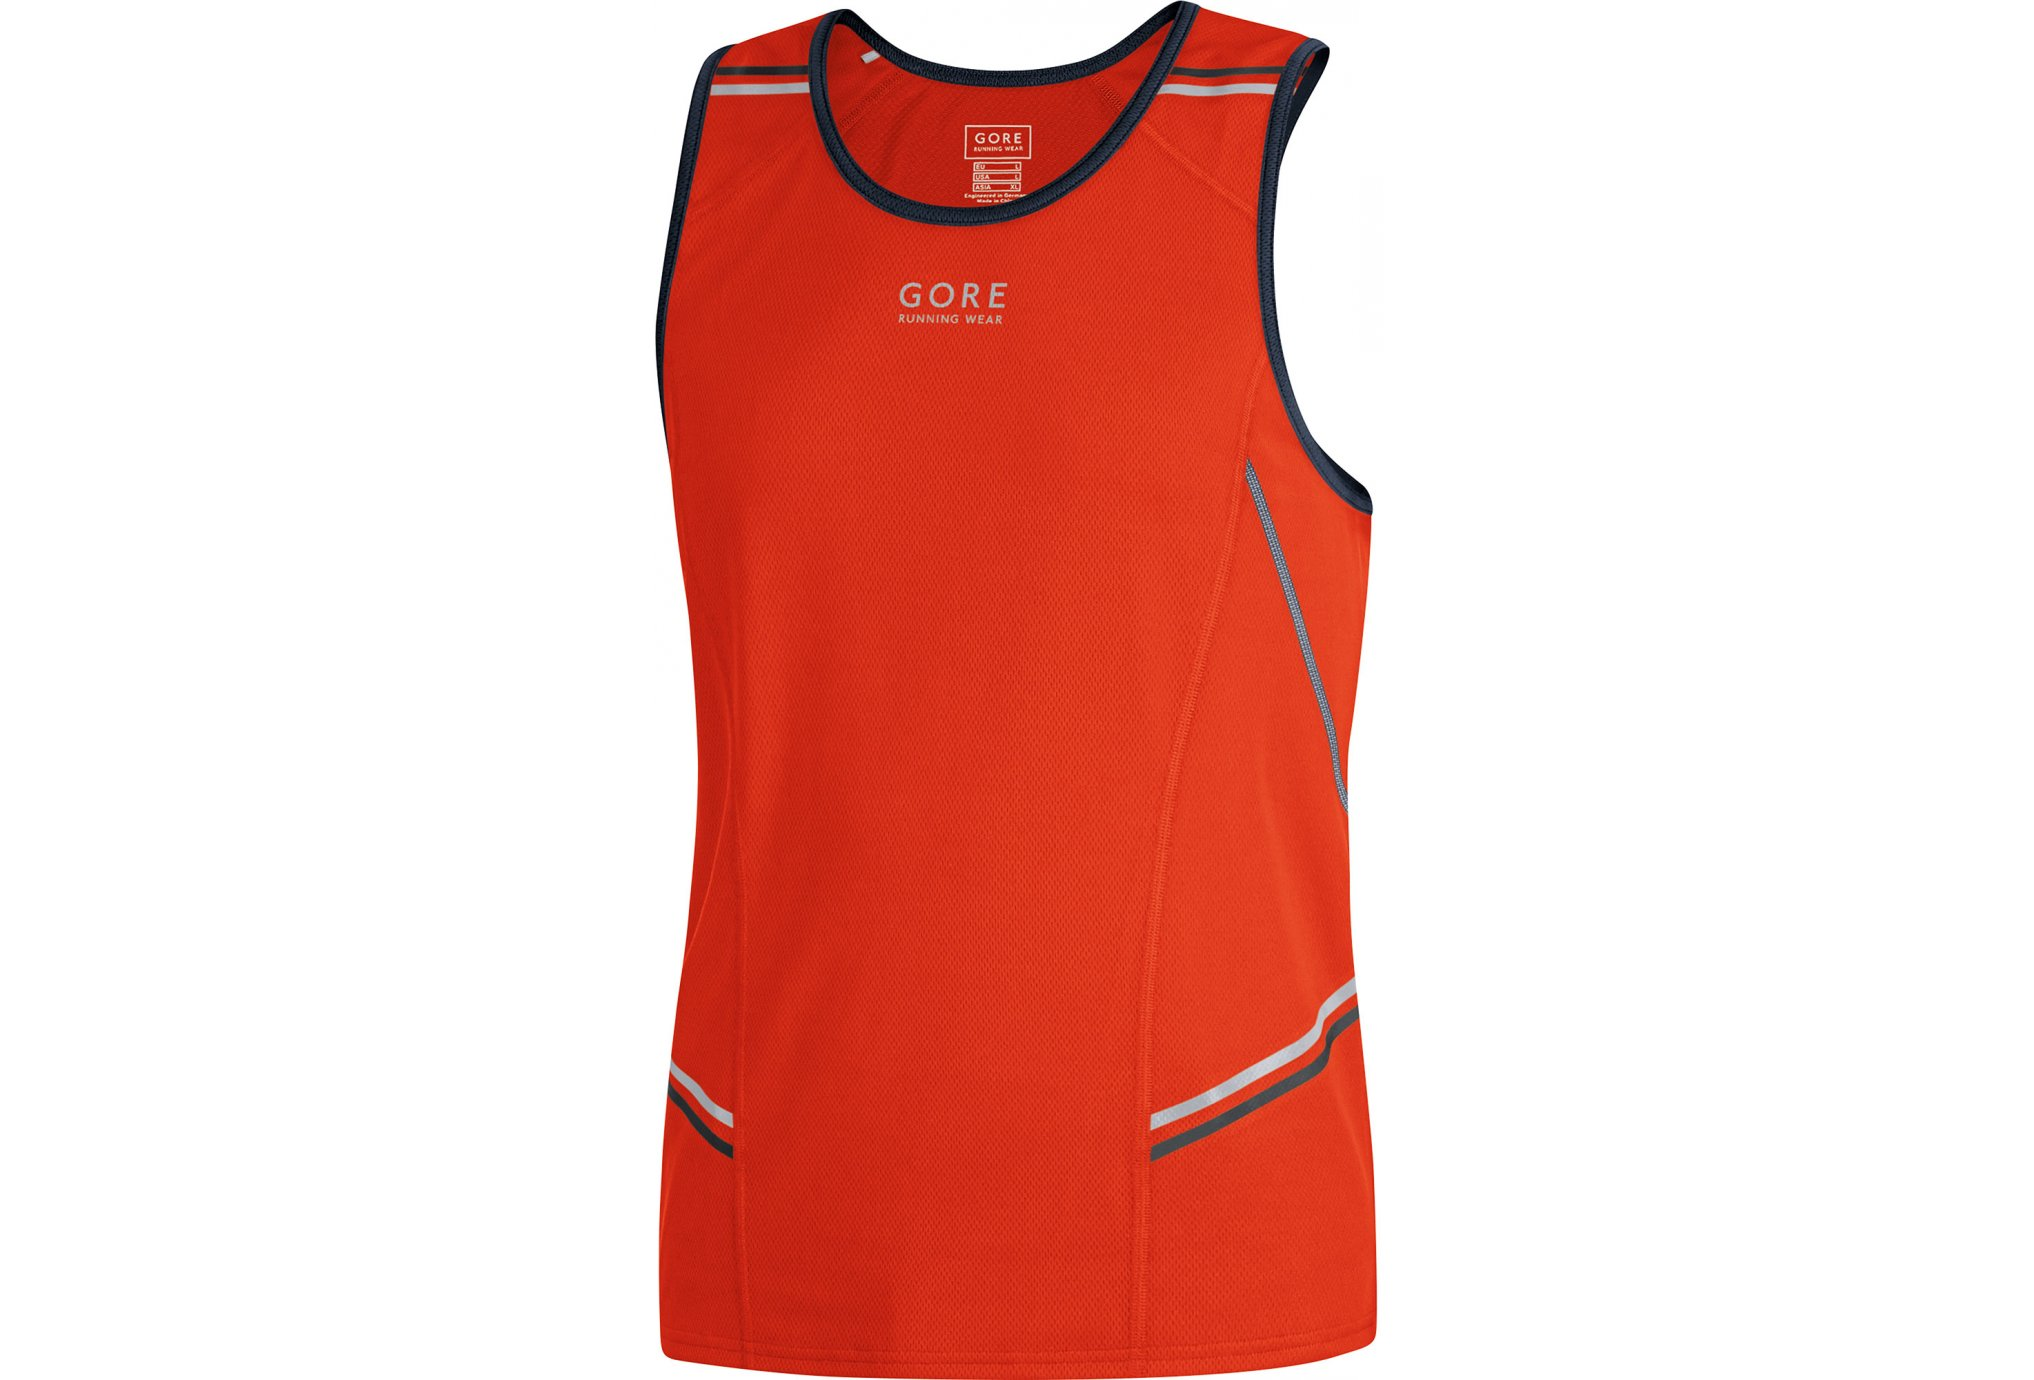 gore-running-wear-debardeur-mythos-6-0-m-vetements-homme-156382-1-fz